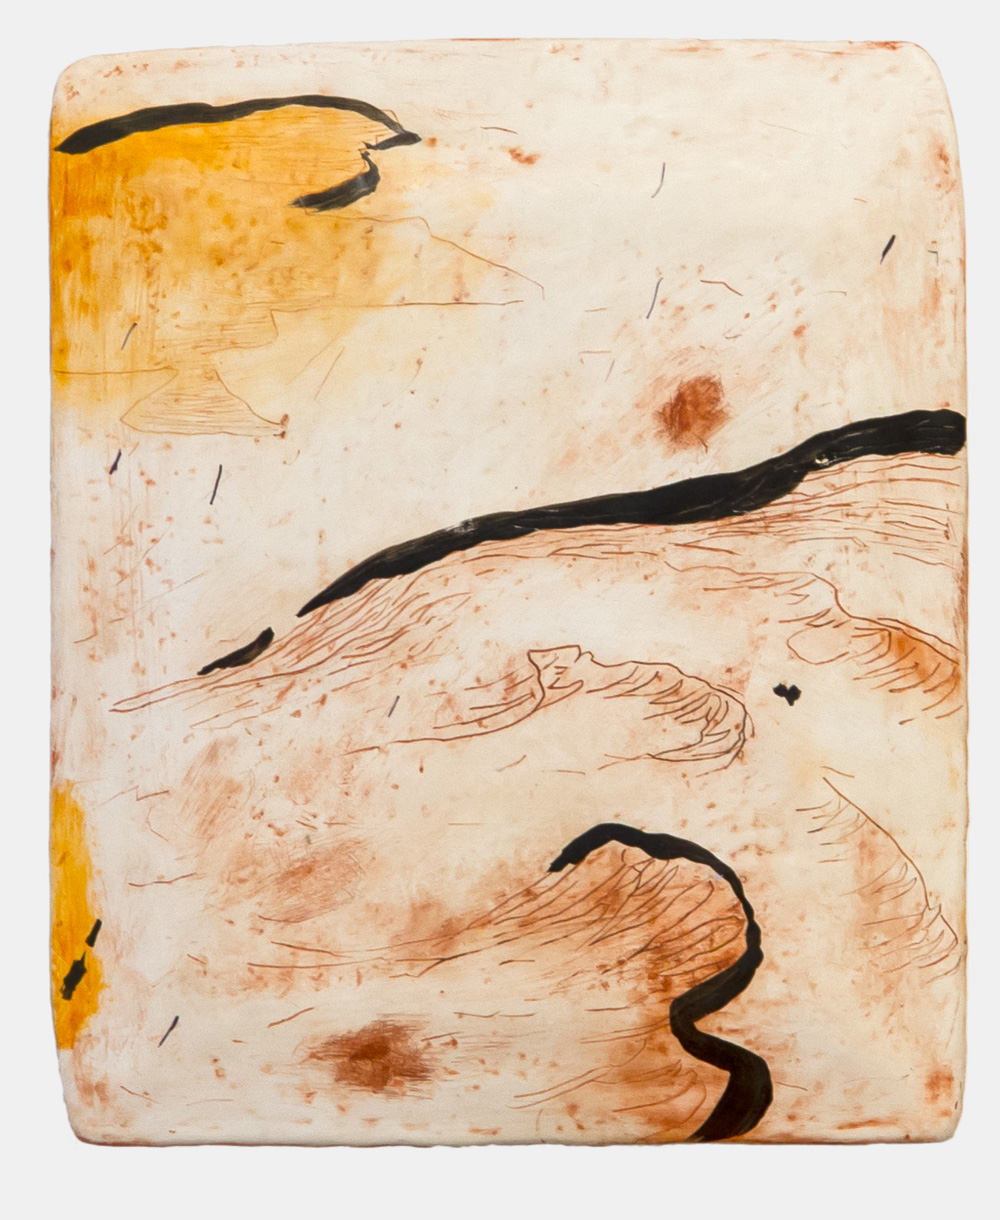 Nina Royle   Evening Tide , 2017  Ink, oil & shellac on a wood and gesso panel  22cm x 19cm